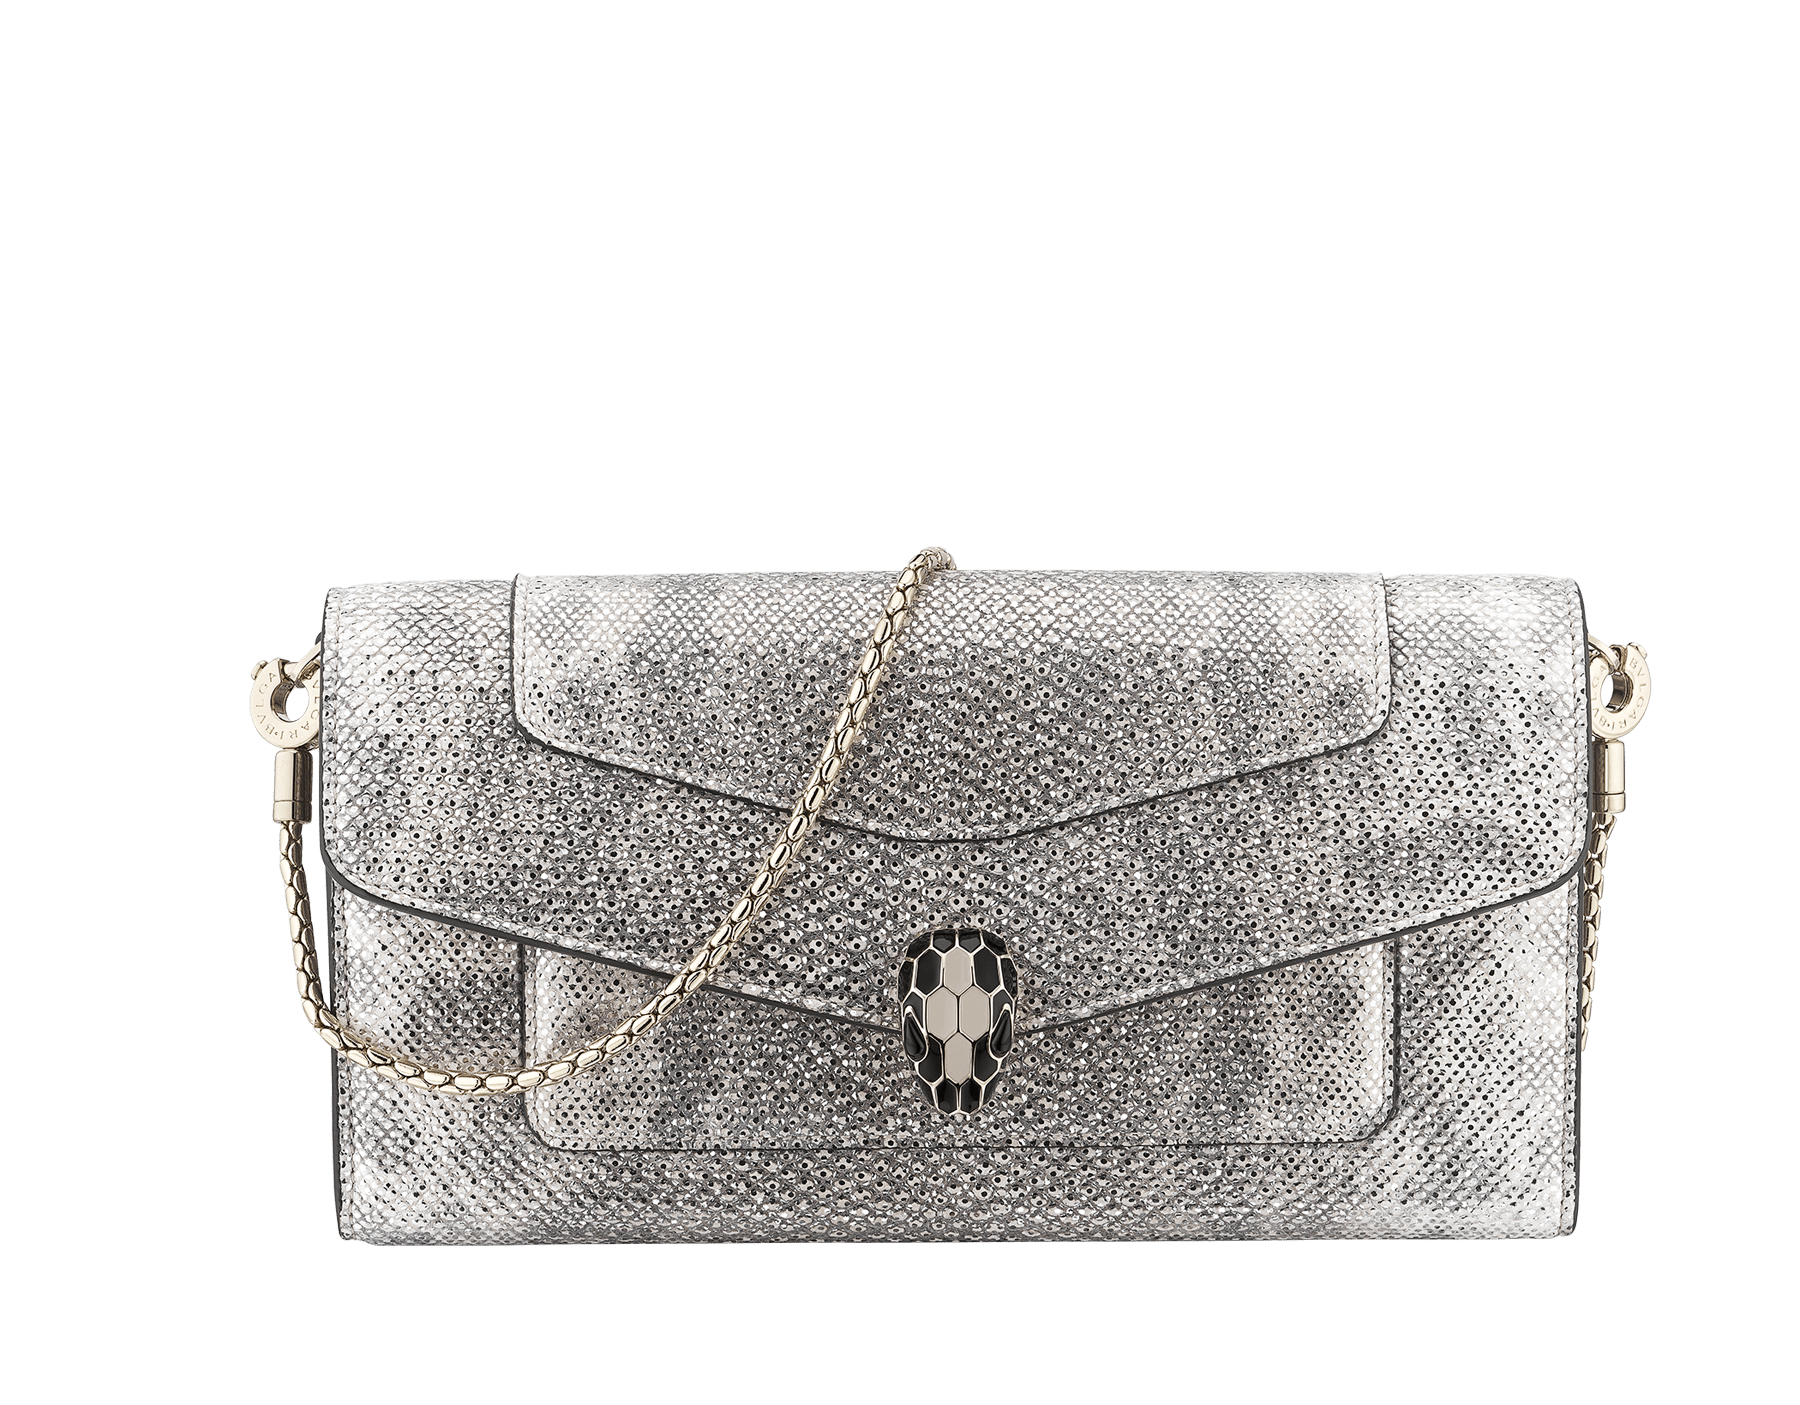 Serpenti Forever wallet pouch in white agate metallic karung skin and white agate calf leather. Iconic snakehead press-stud closure in black and white agate enamel, with black onyx eyes. 289310 image 1